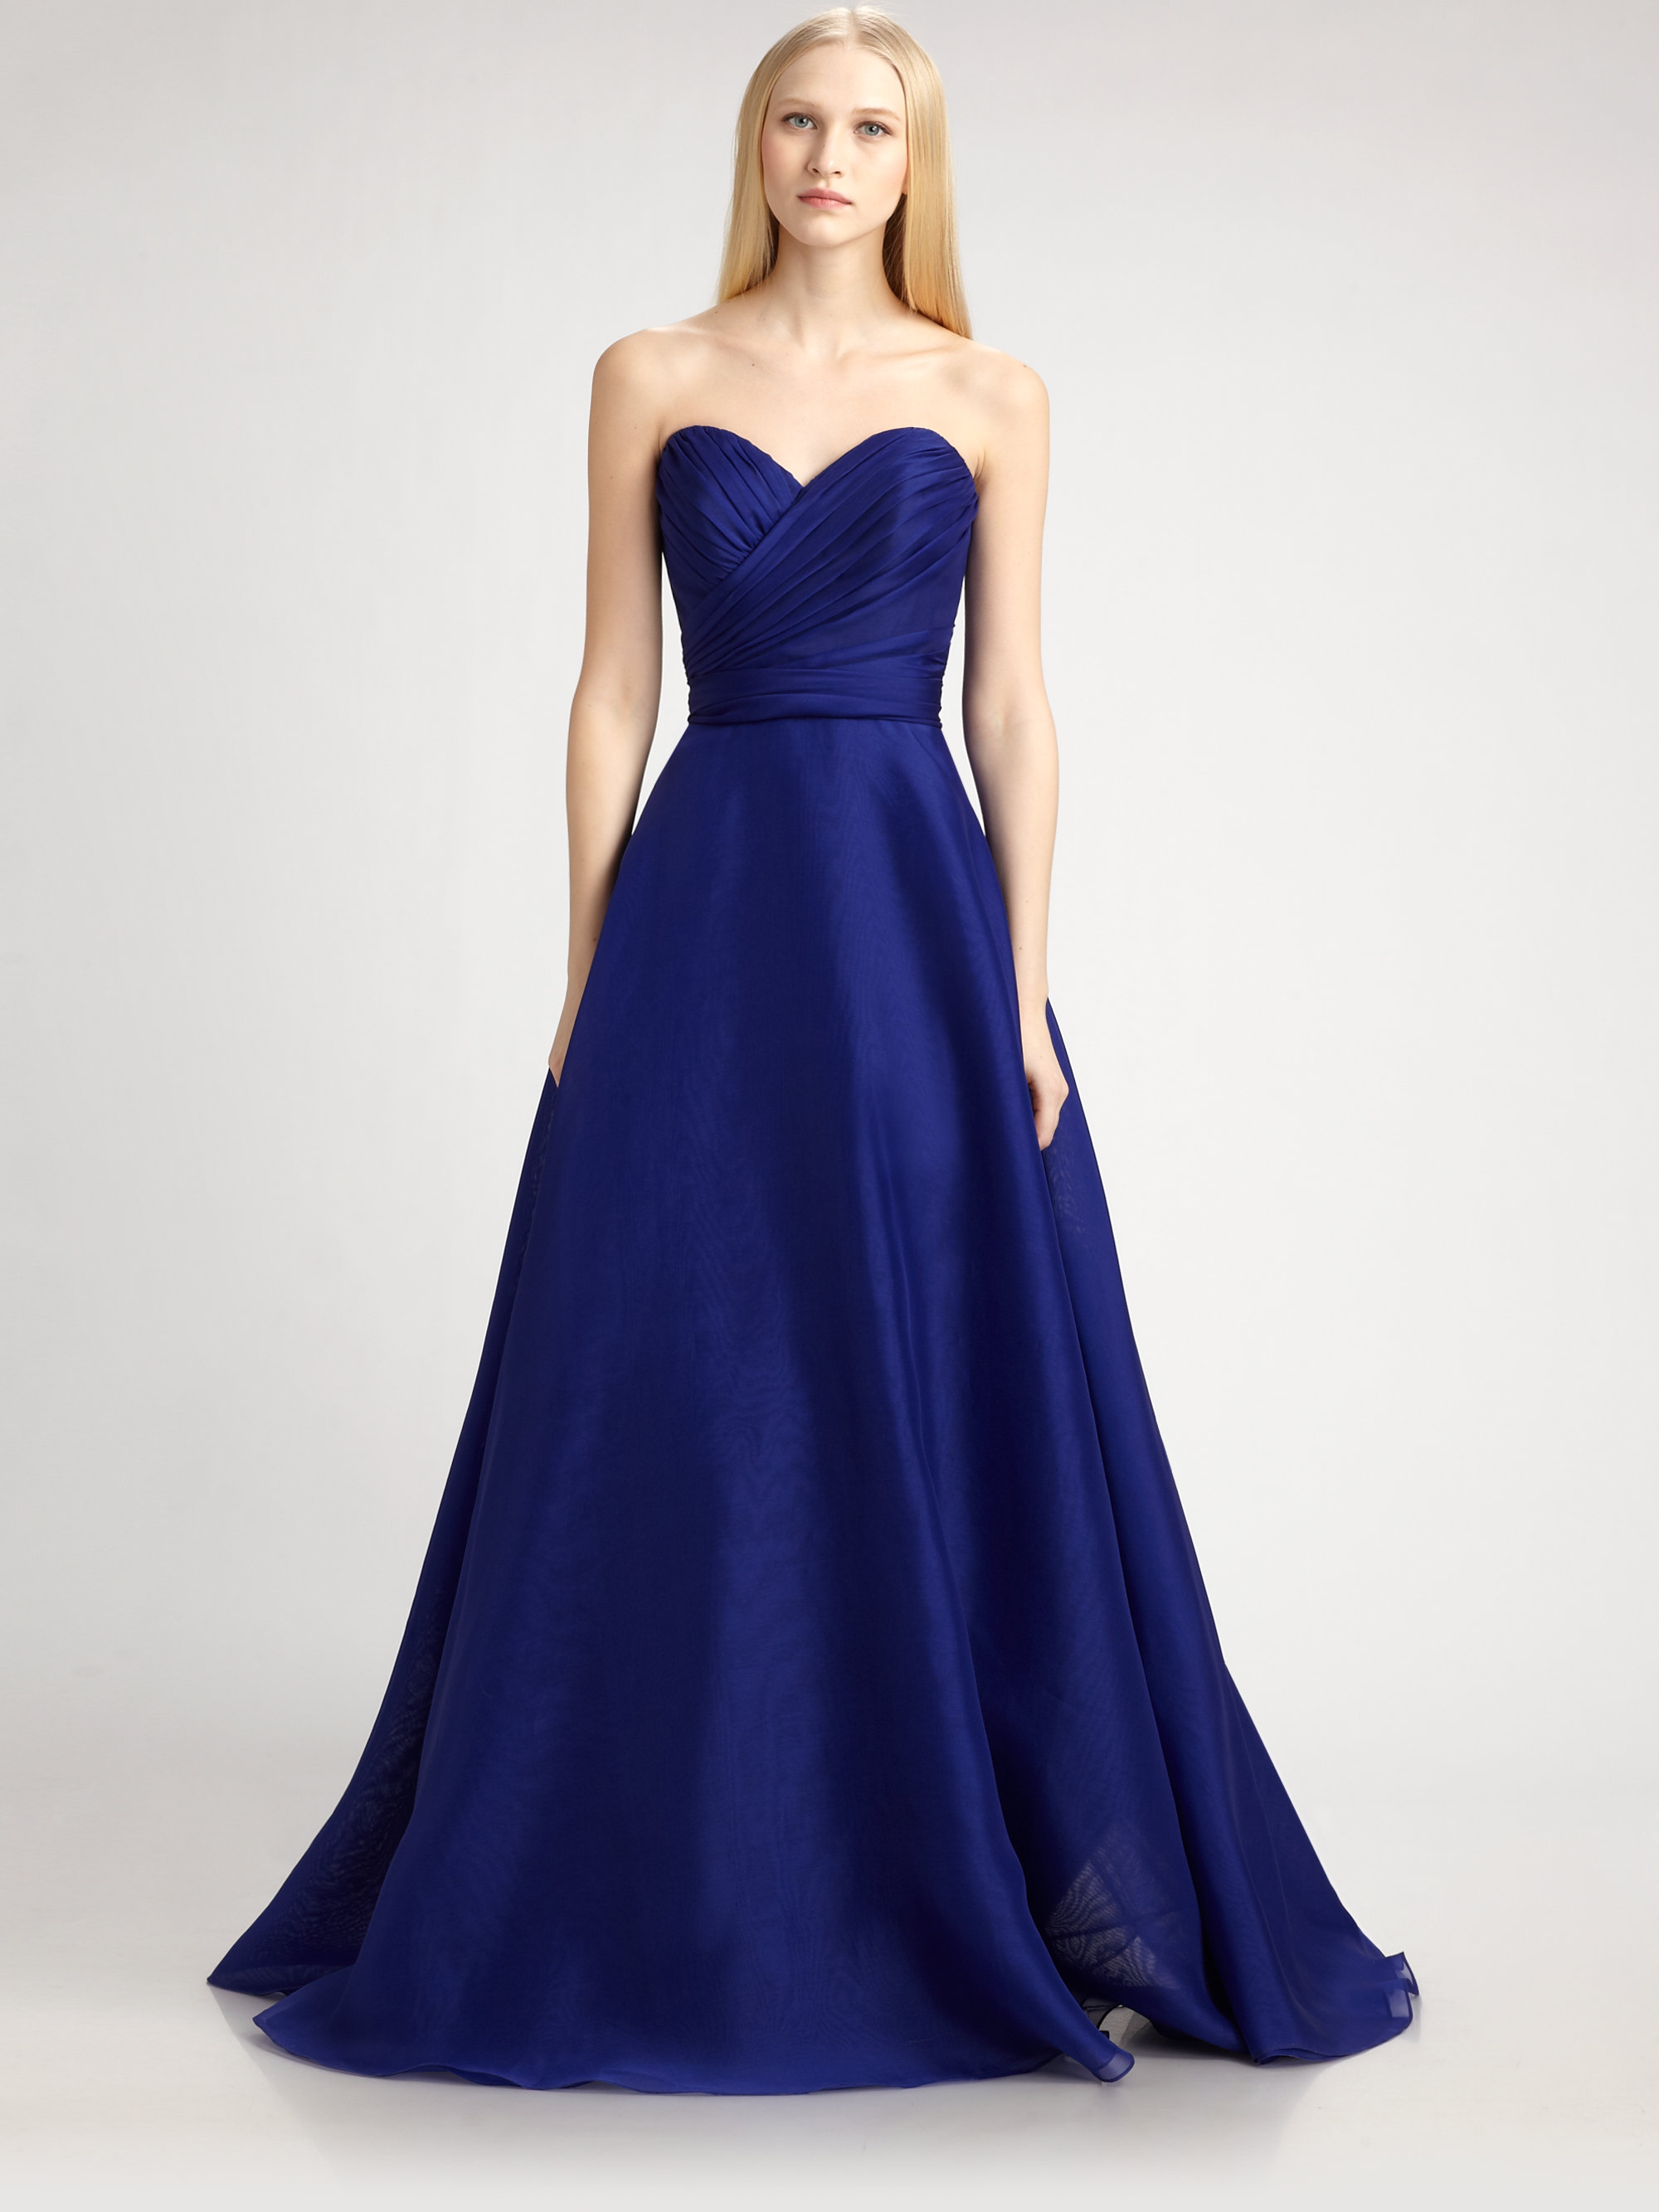 Lyst - Theia Silk Organza Ball Gown in Blue